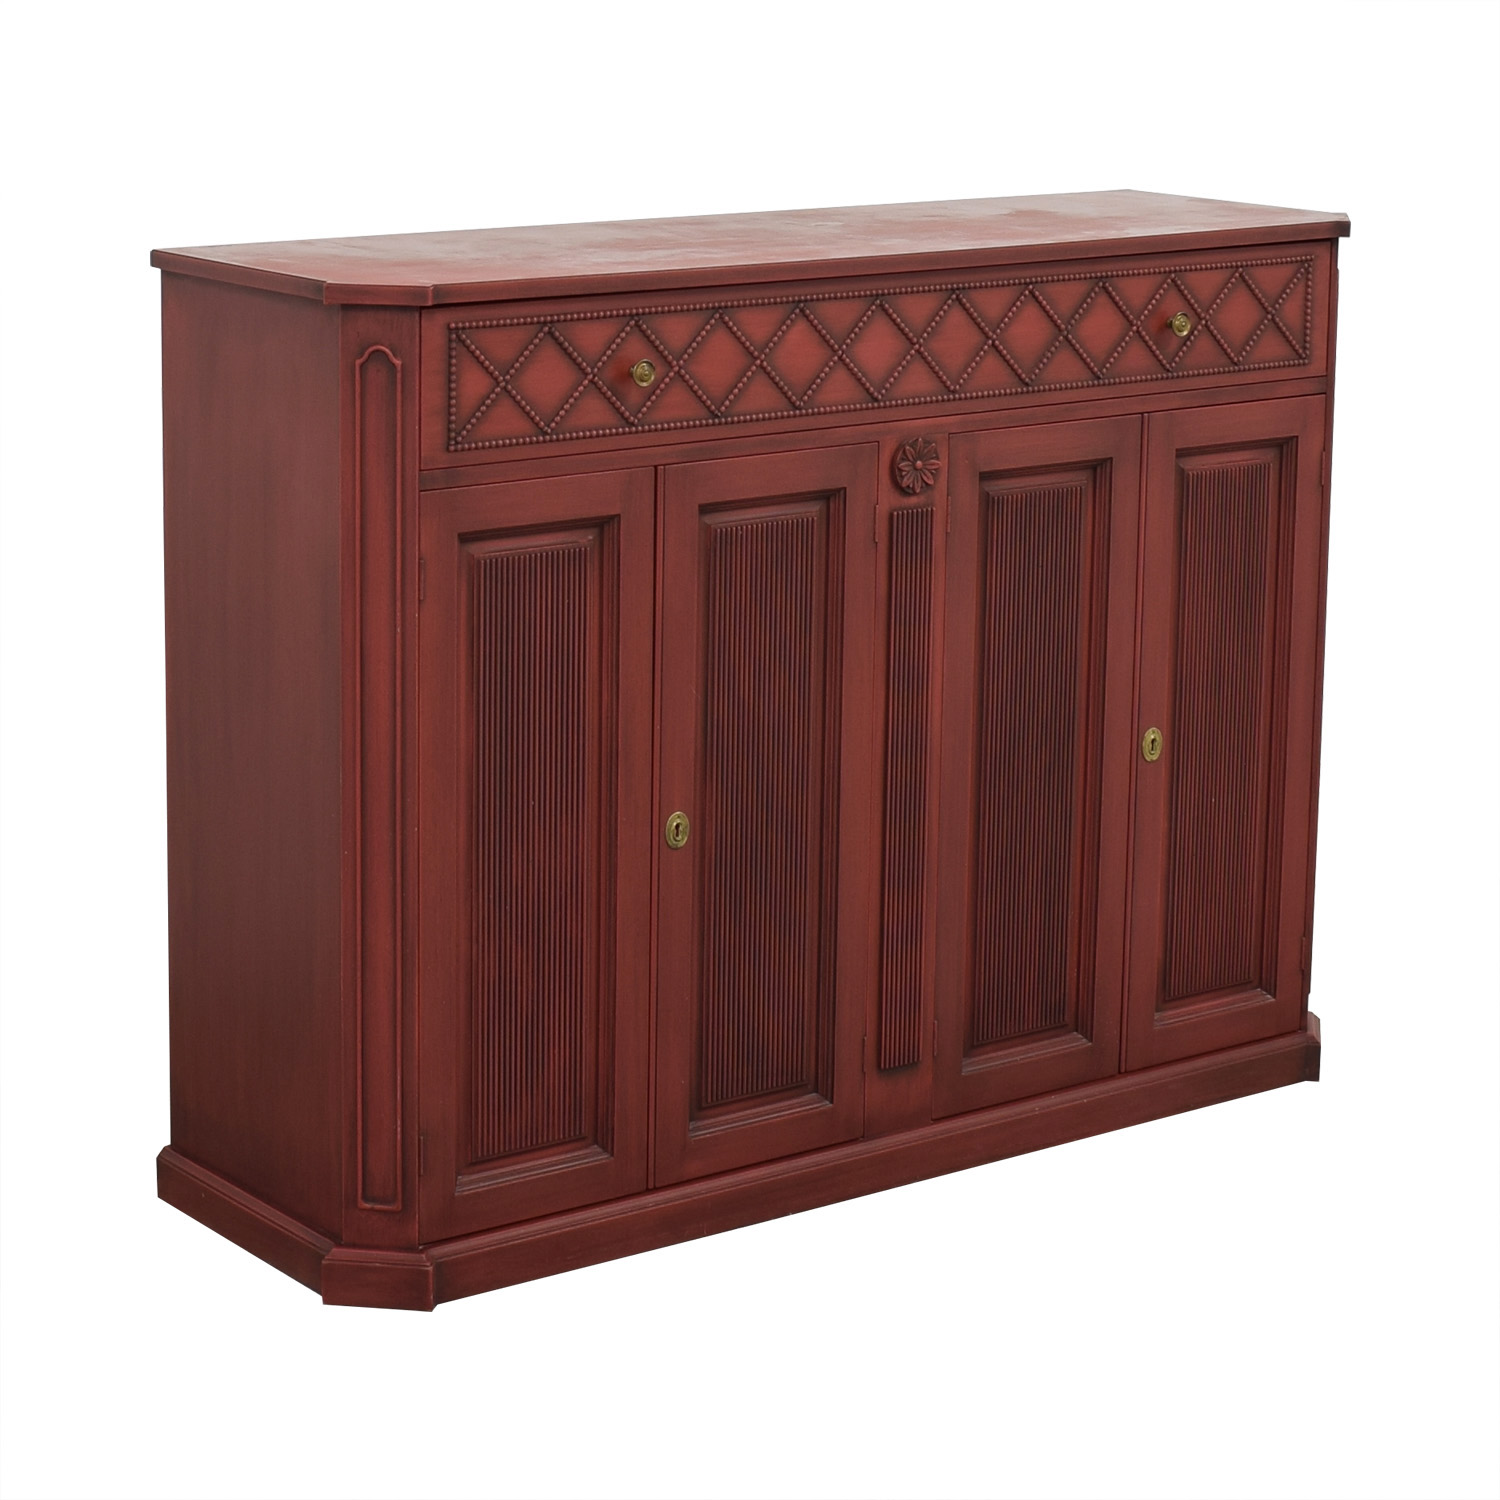 Domain Home Domain Home Buffet Cabinet nyc